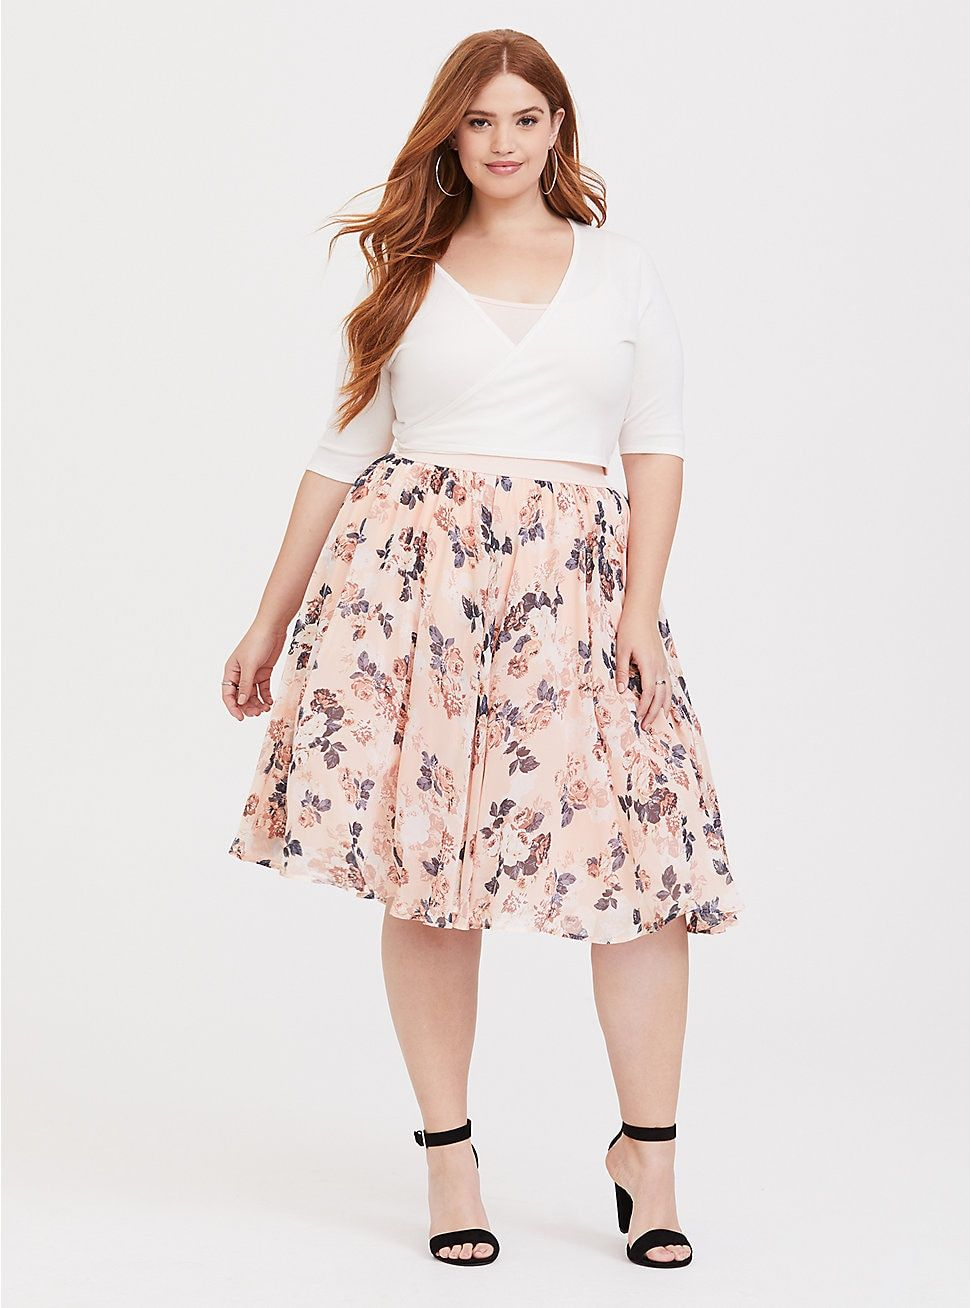 c7d65a6cf13701 Blush Floral Chiffon Skater Midi Skirt in 2019 | Looks To Inspire ...